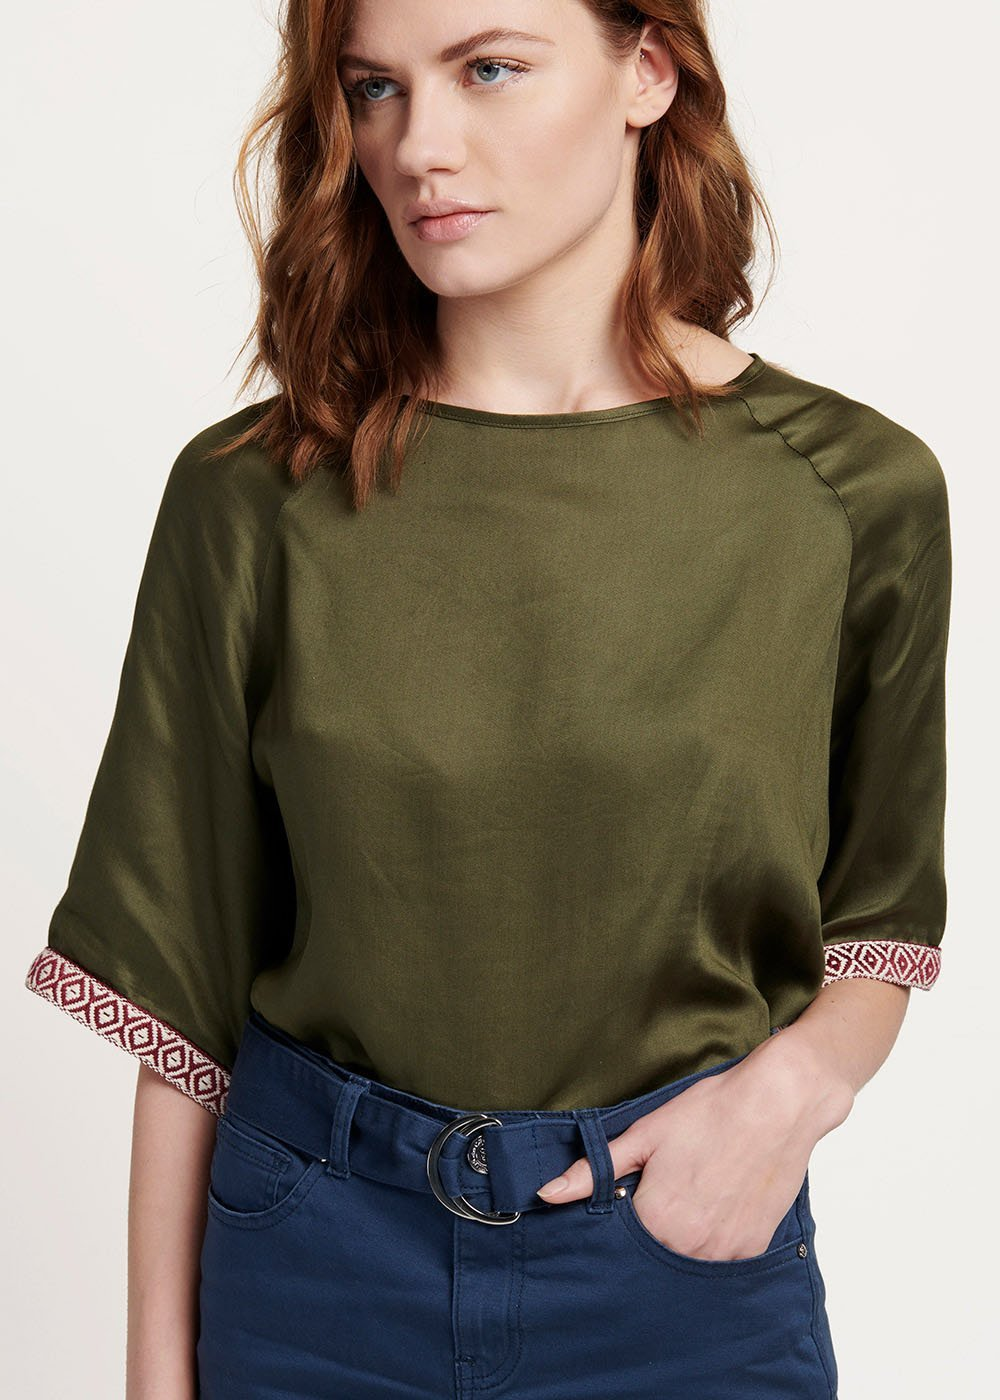 T-shirt Sharly con passamaneria a contrasto - Timo - Donna